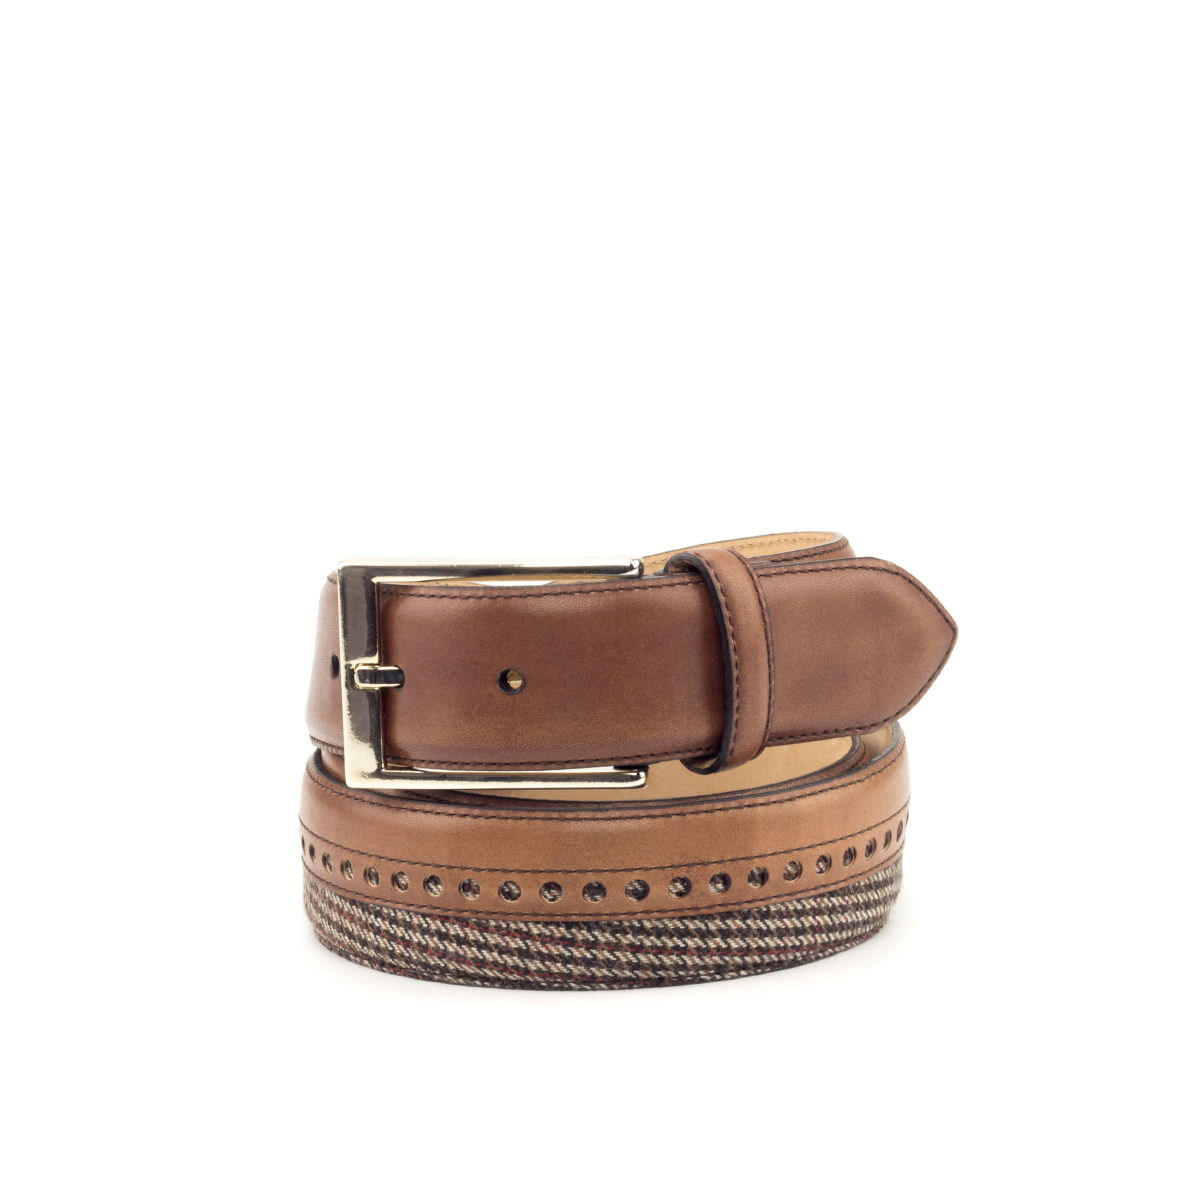 Bottom view of model Sequim, med brown painted calf, tweed fabric, safari nubuck, gold buckle Golf BespokeShoes